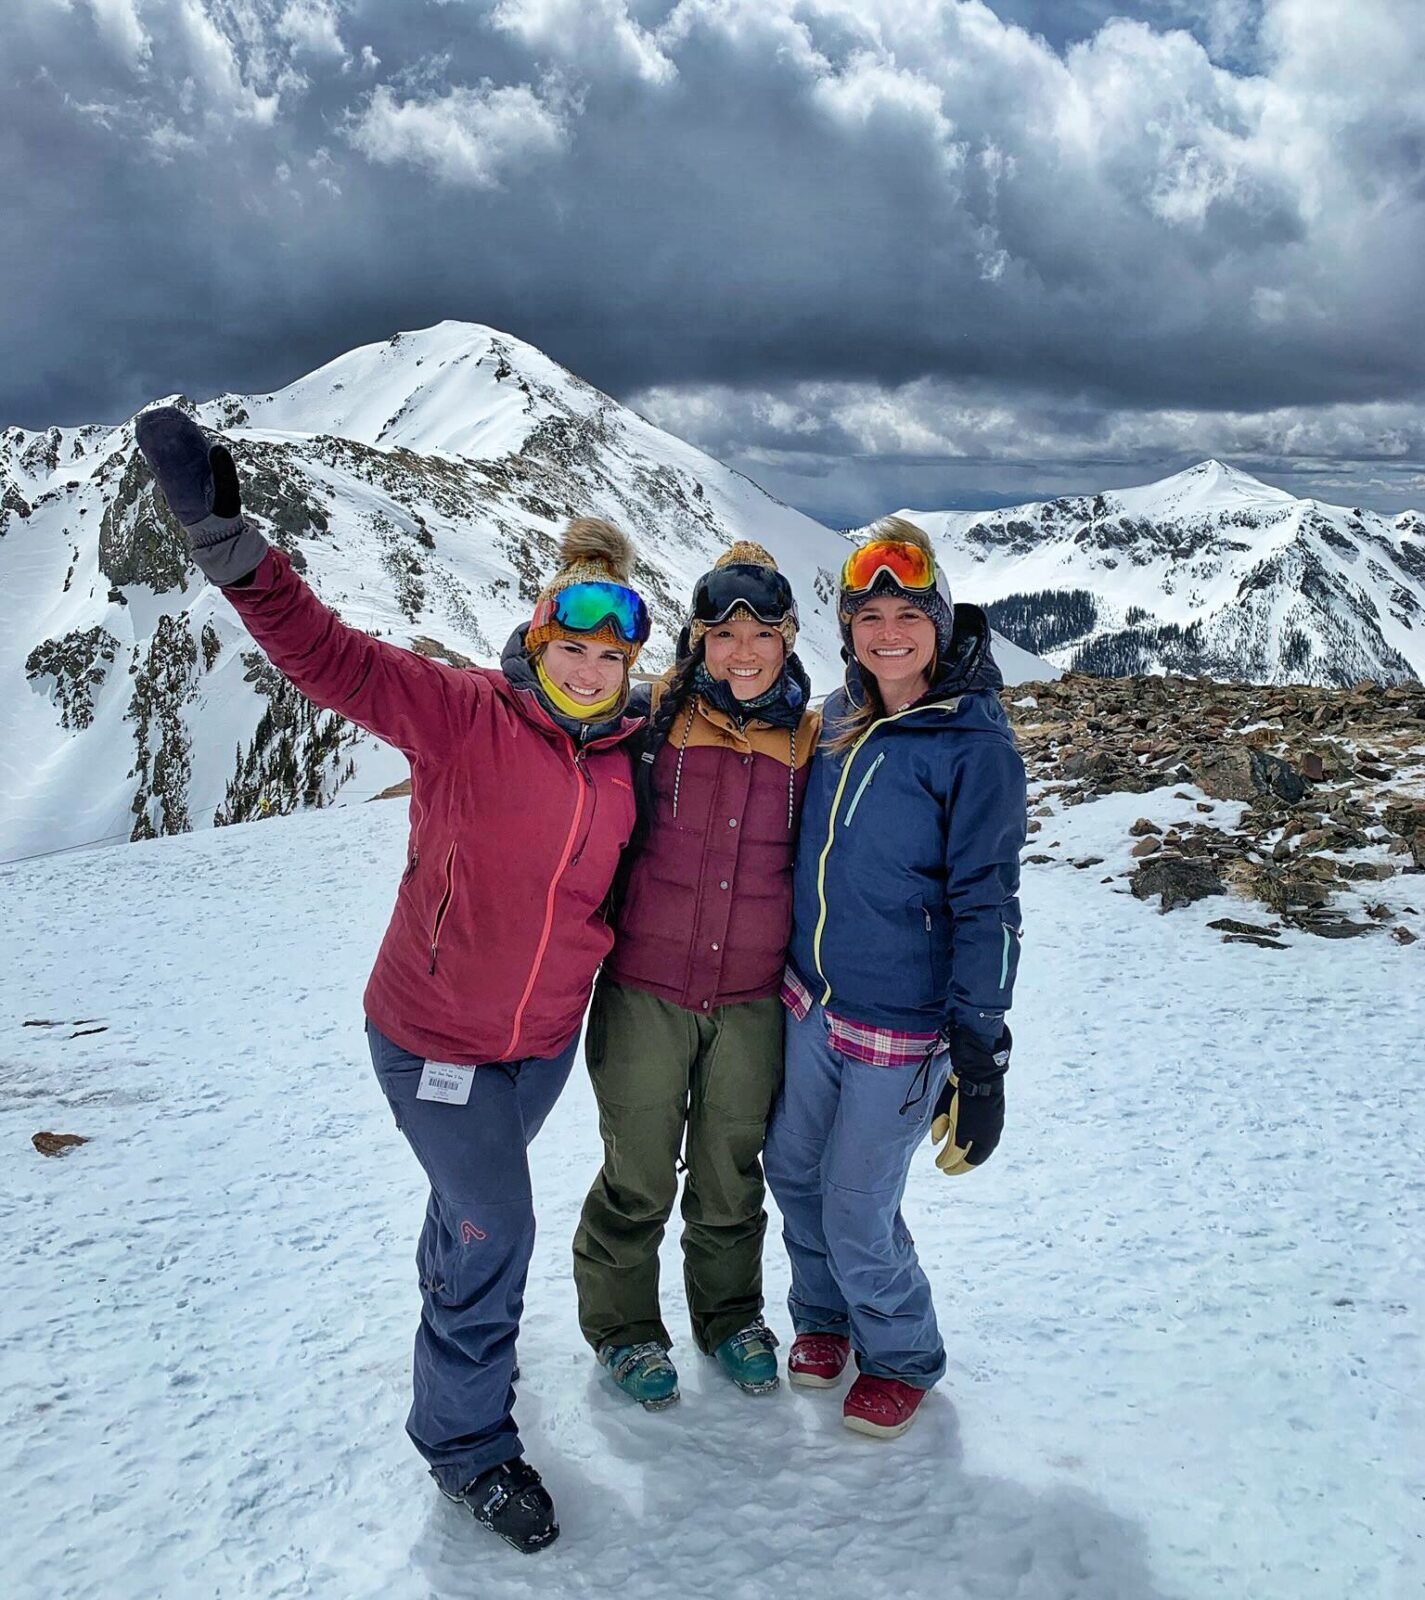 Image of Chereen and friends in the mountains of colorado